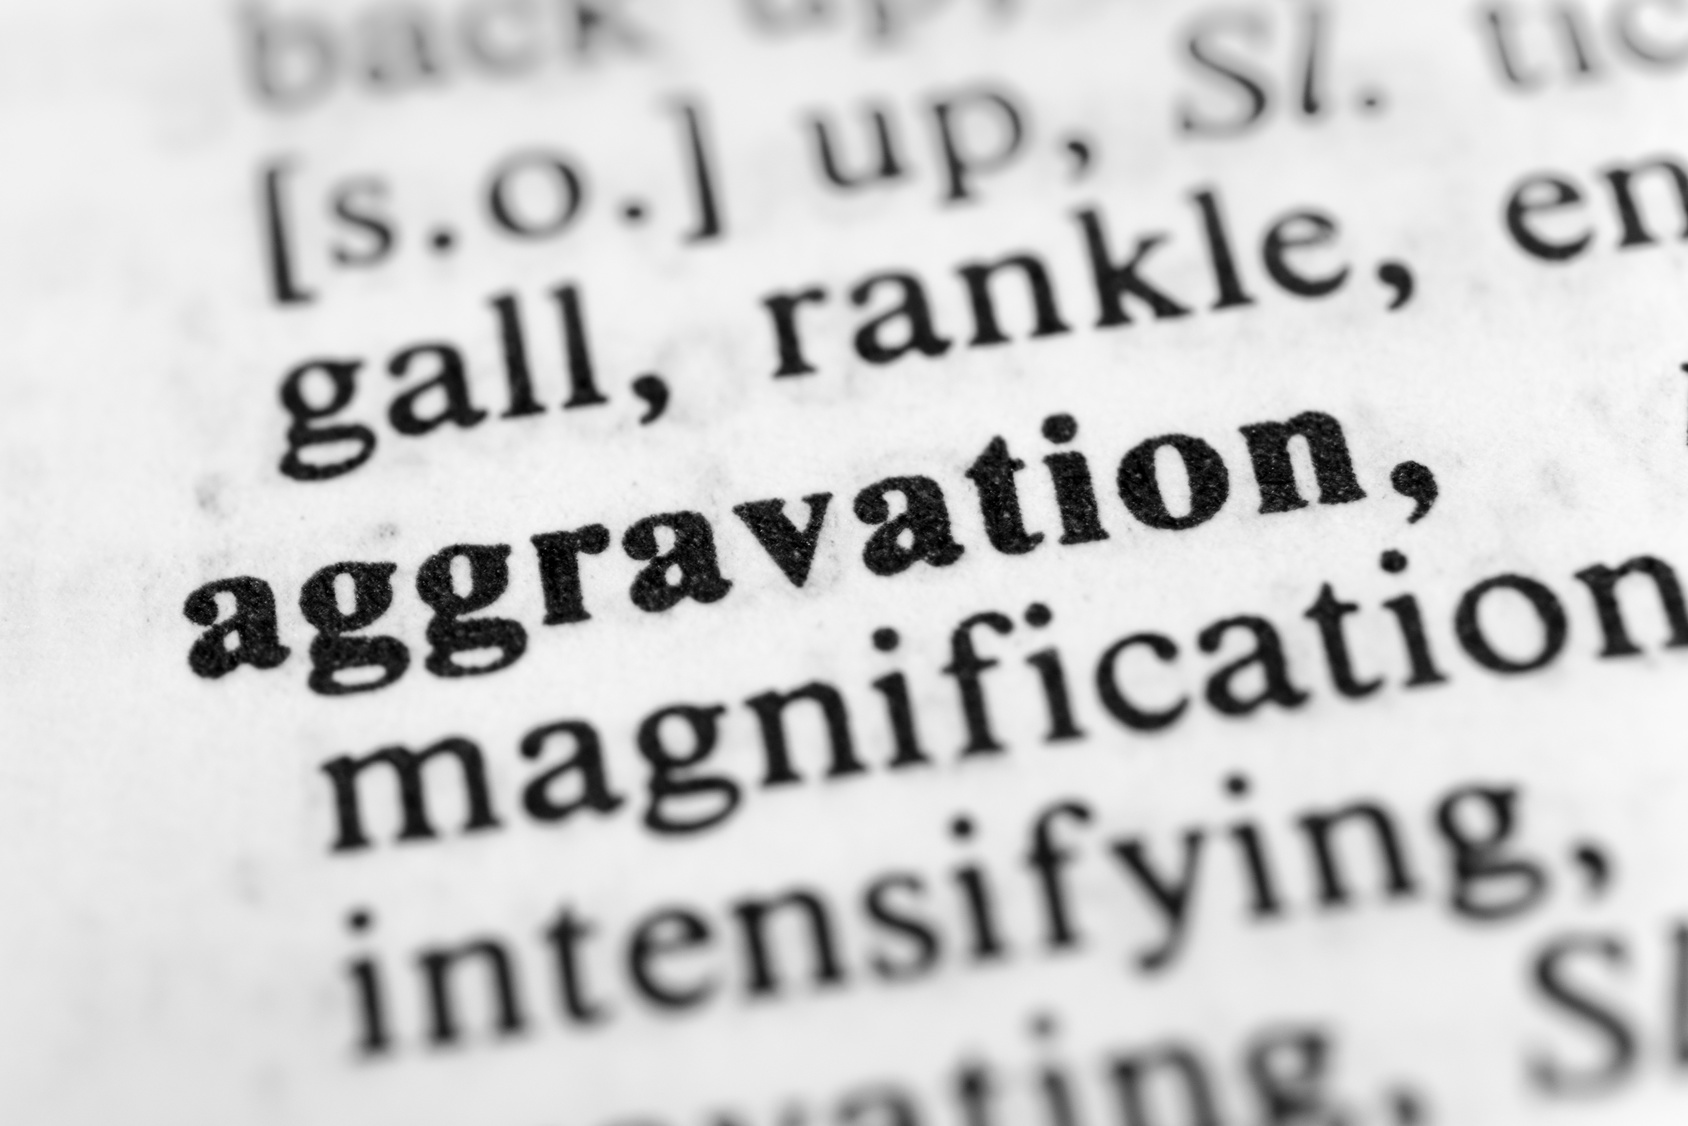 Aggravations: Is the Healing Crisis Desirable or Necessary